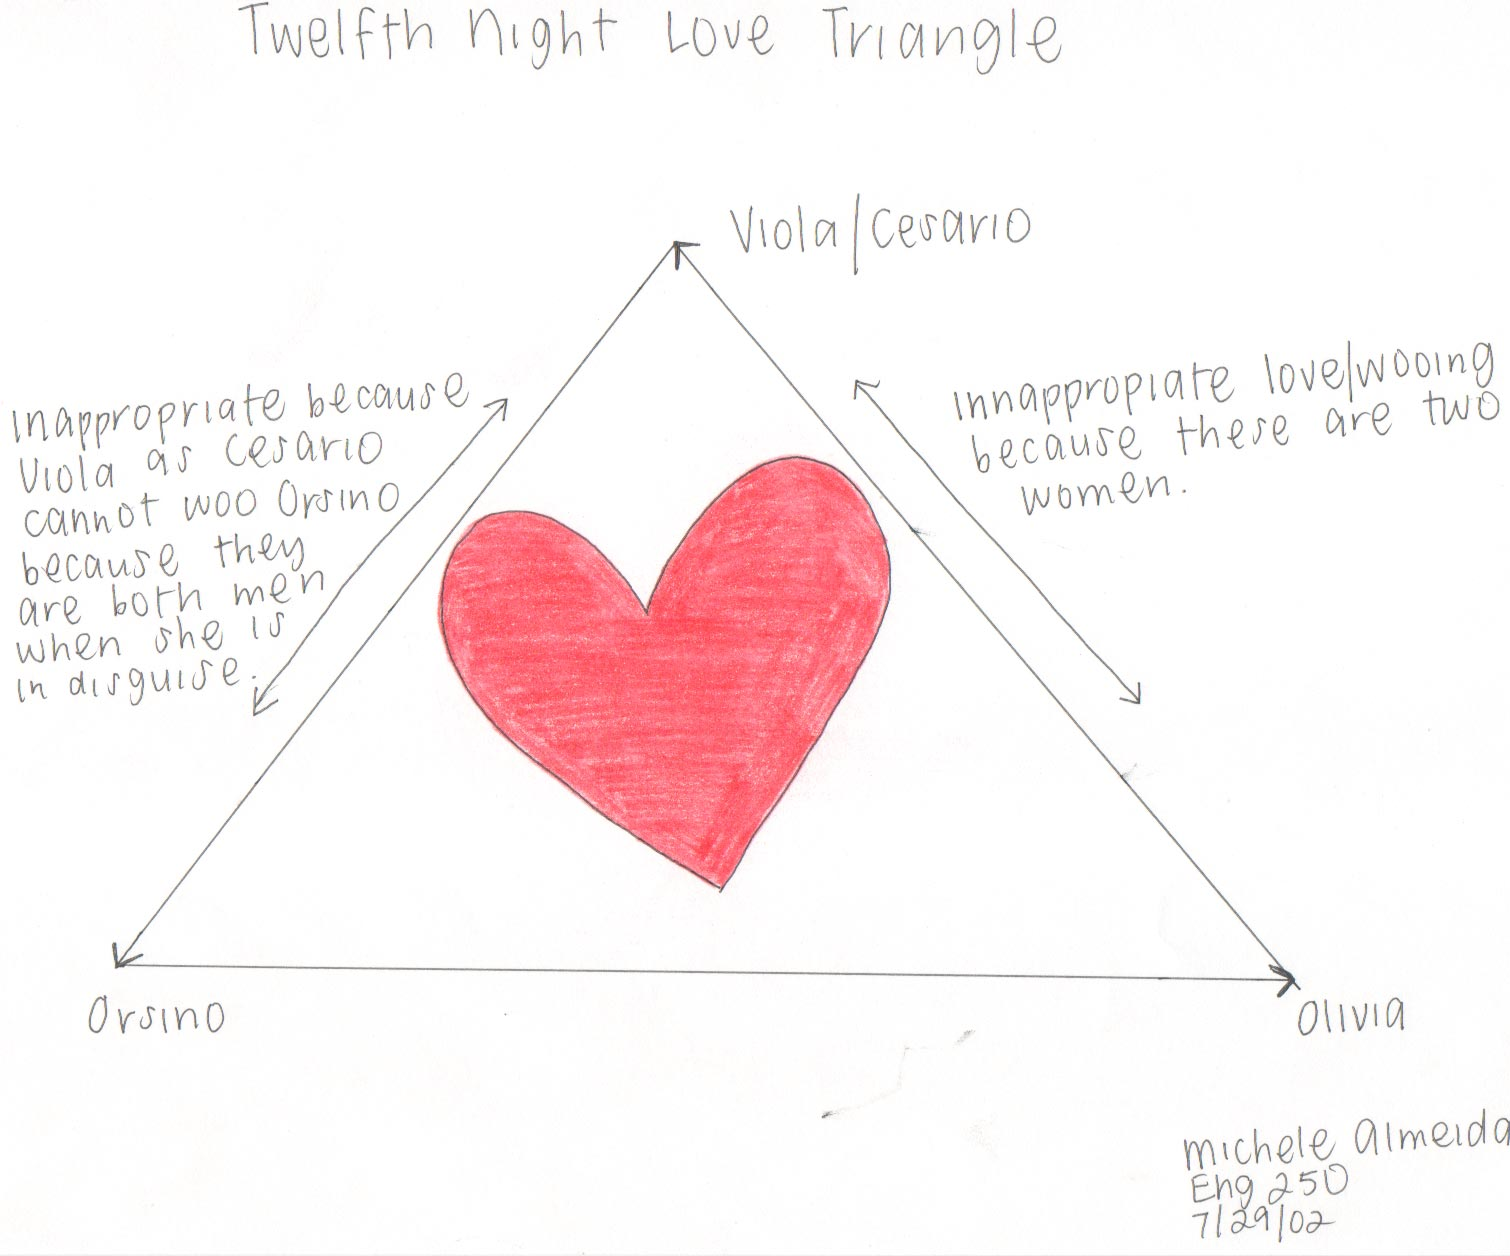 twelfth night essays love triangle An analysis of the love triangle in the twelfth night by william shakespeare pages 1 words 808 view full essay more essays like this.